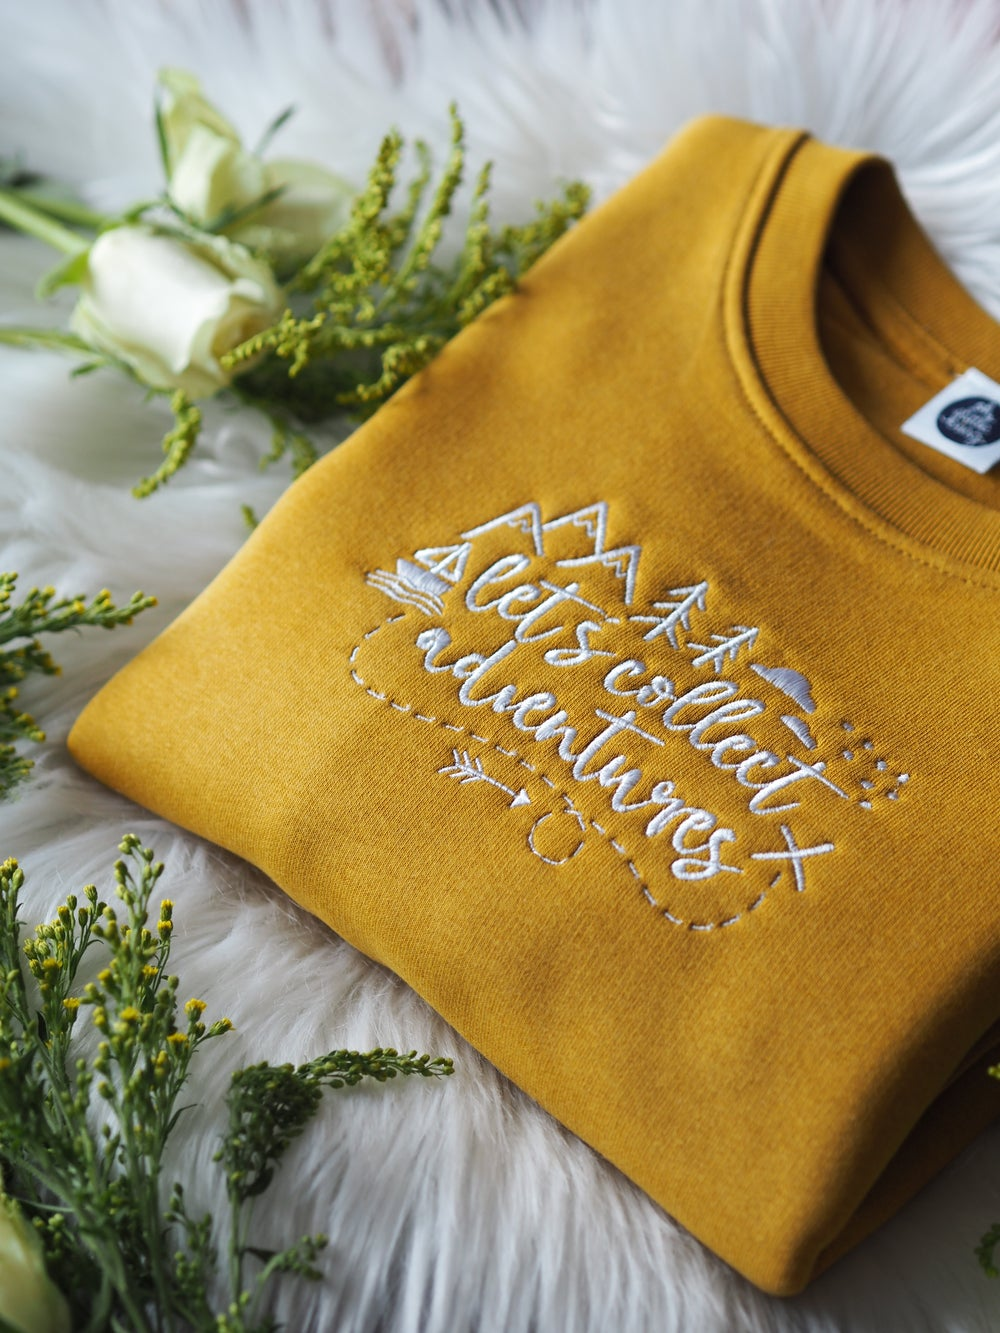 Image of Let's Collect Adventures - Mustard sweater